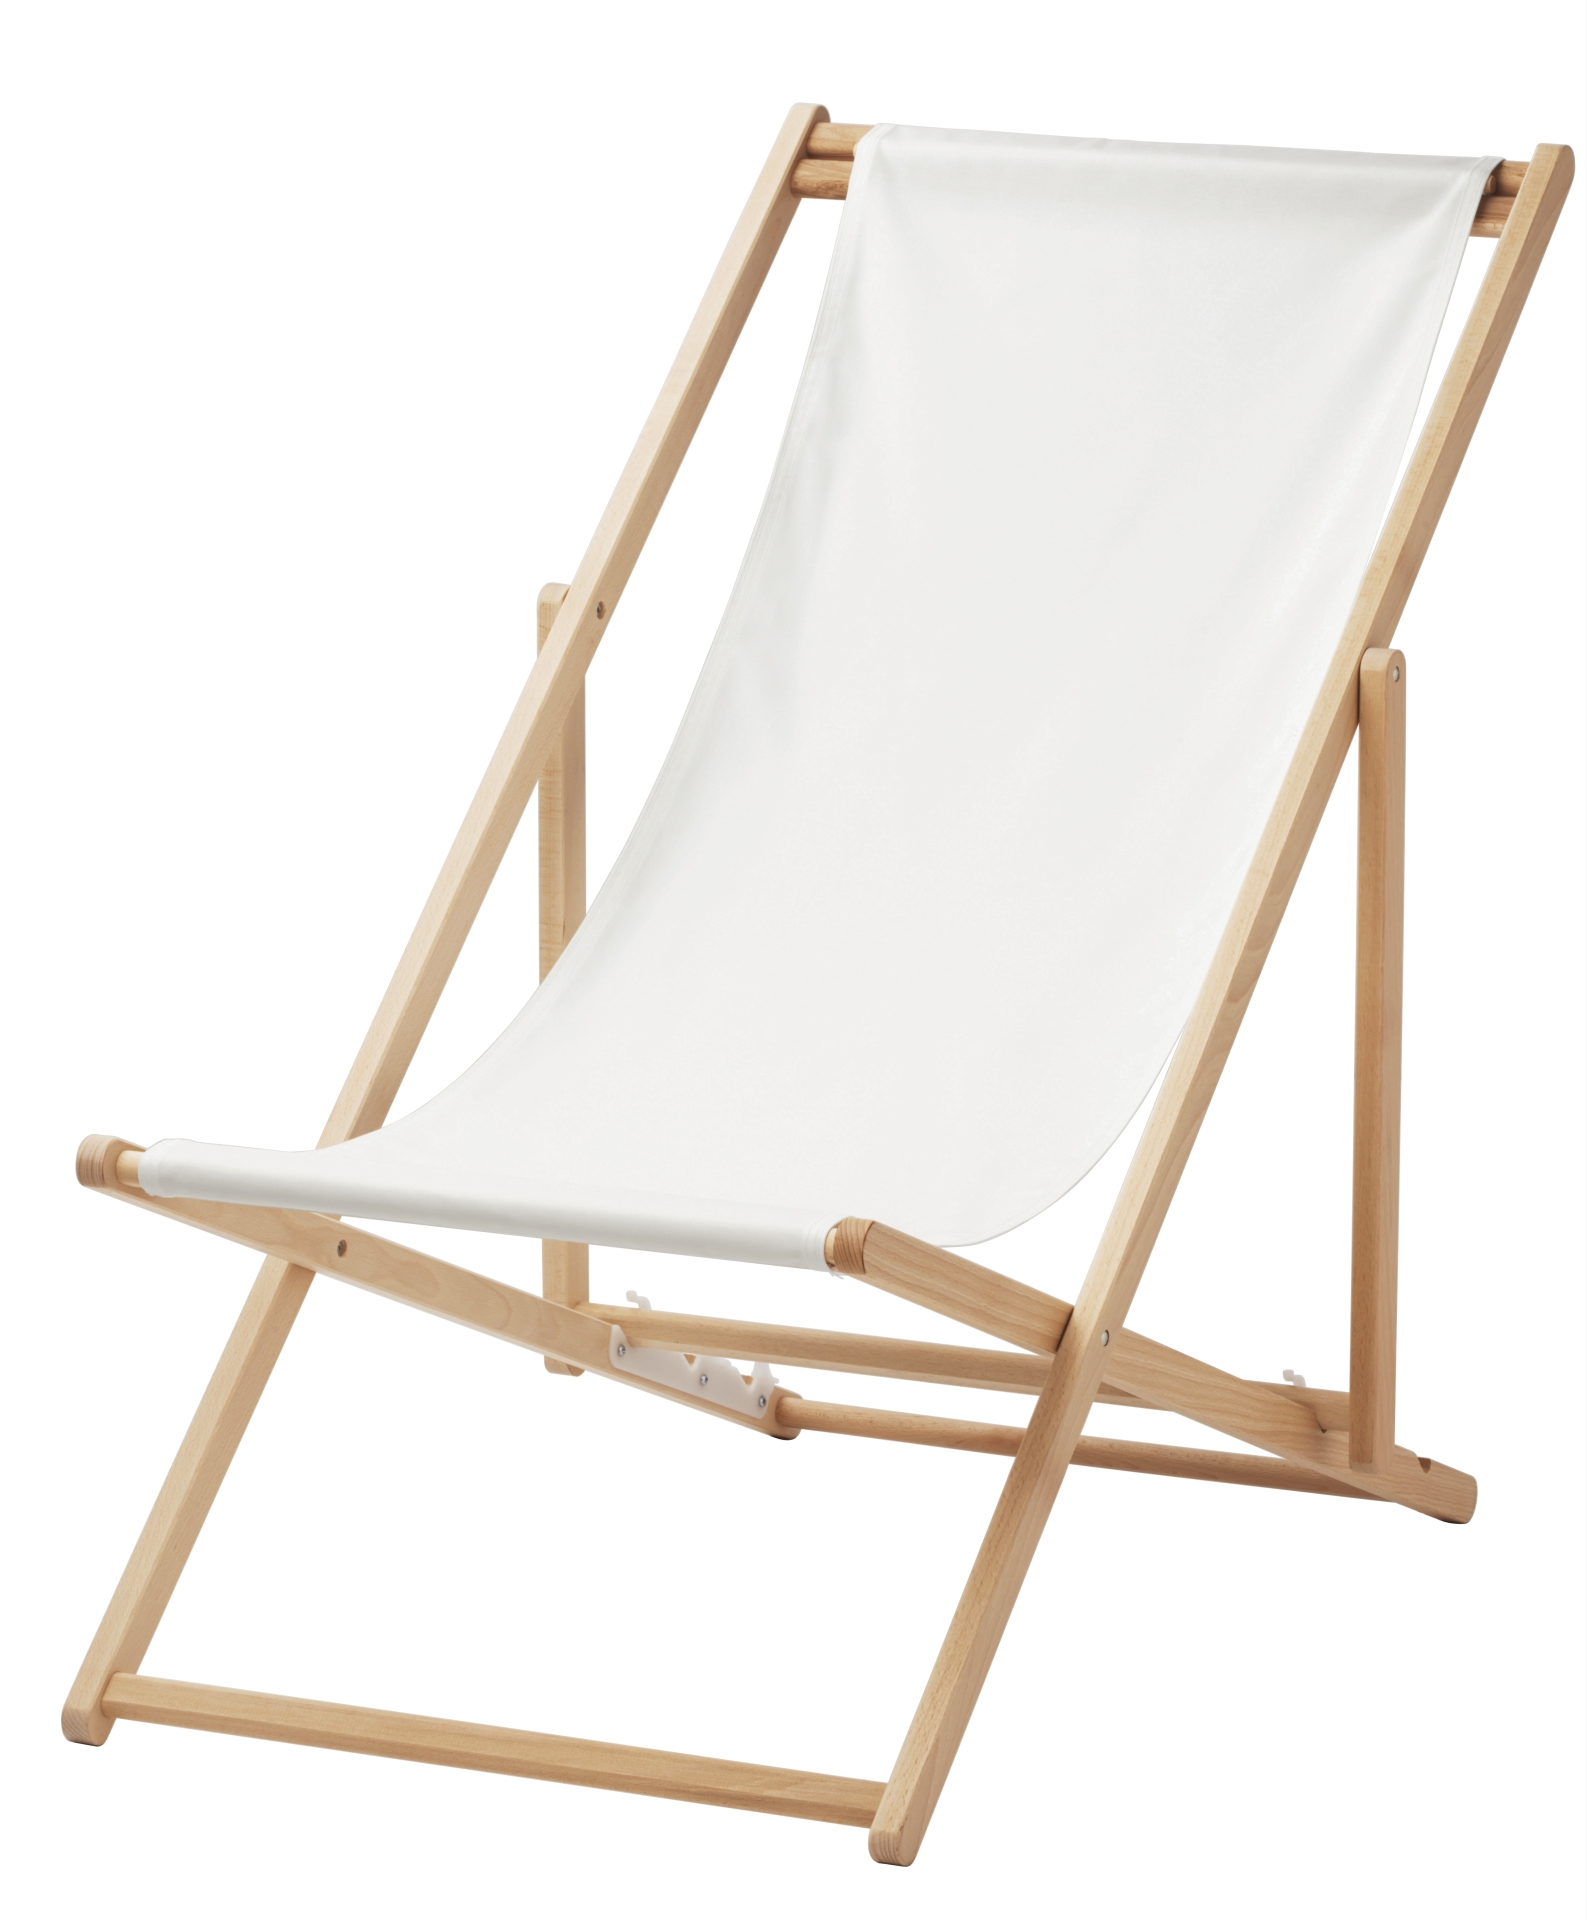 ikea recalls beach chairs due to fall and fingertip. Black Bedroom Furniture Sets. Home Design Ideas